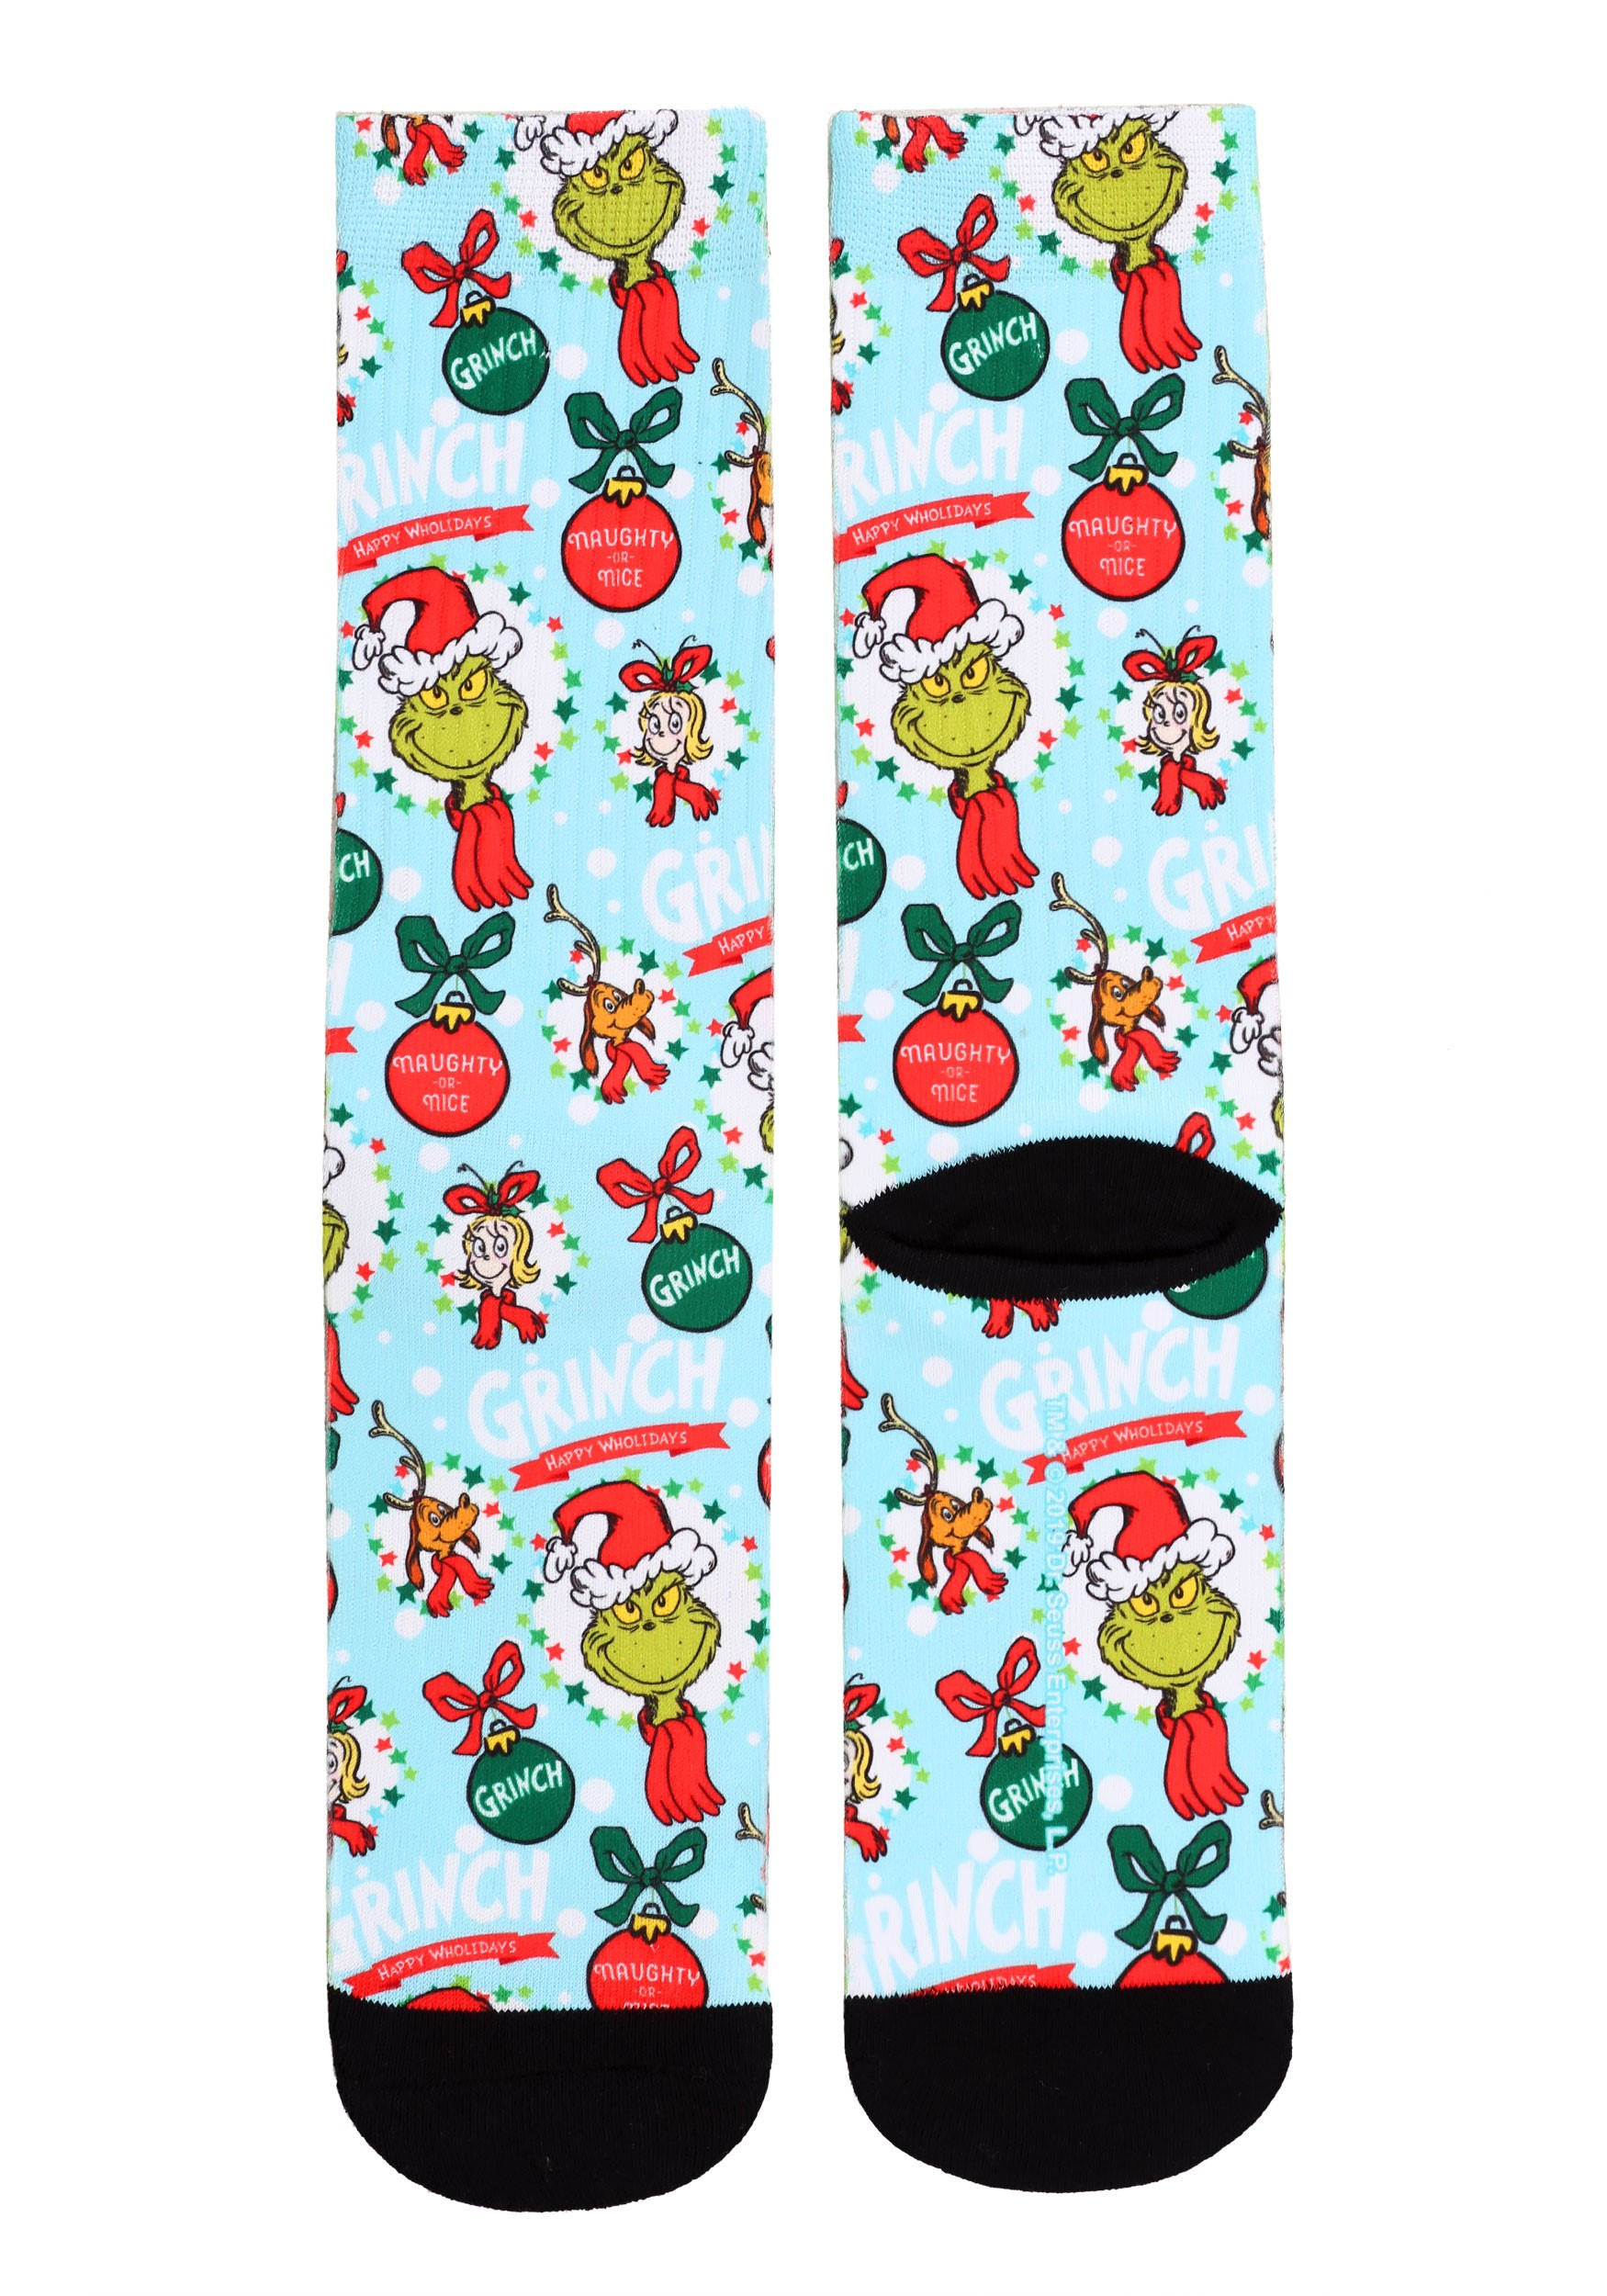 The Grinch All-Over-Print Sublimated Socks for Adults